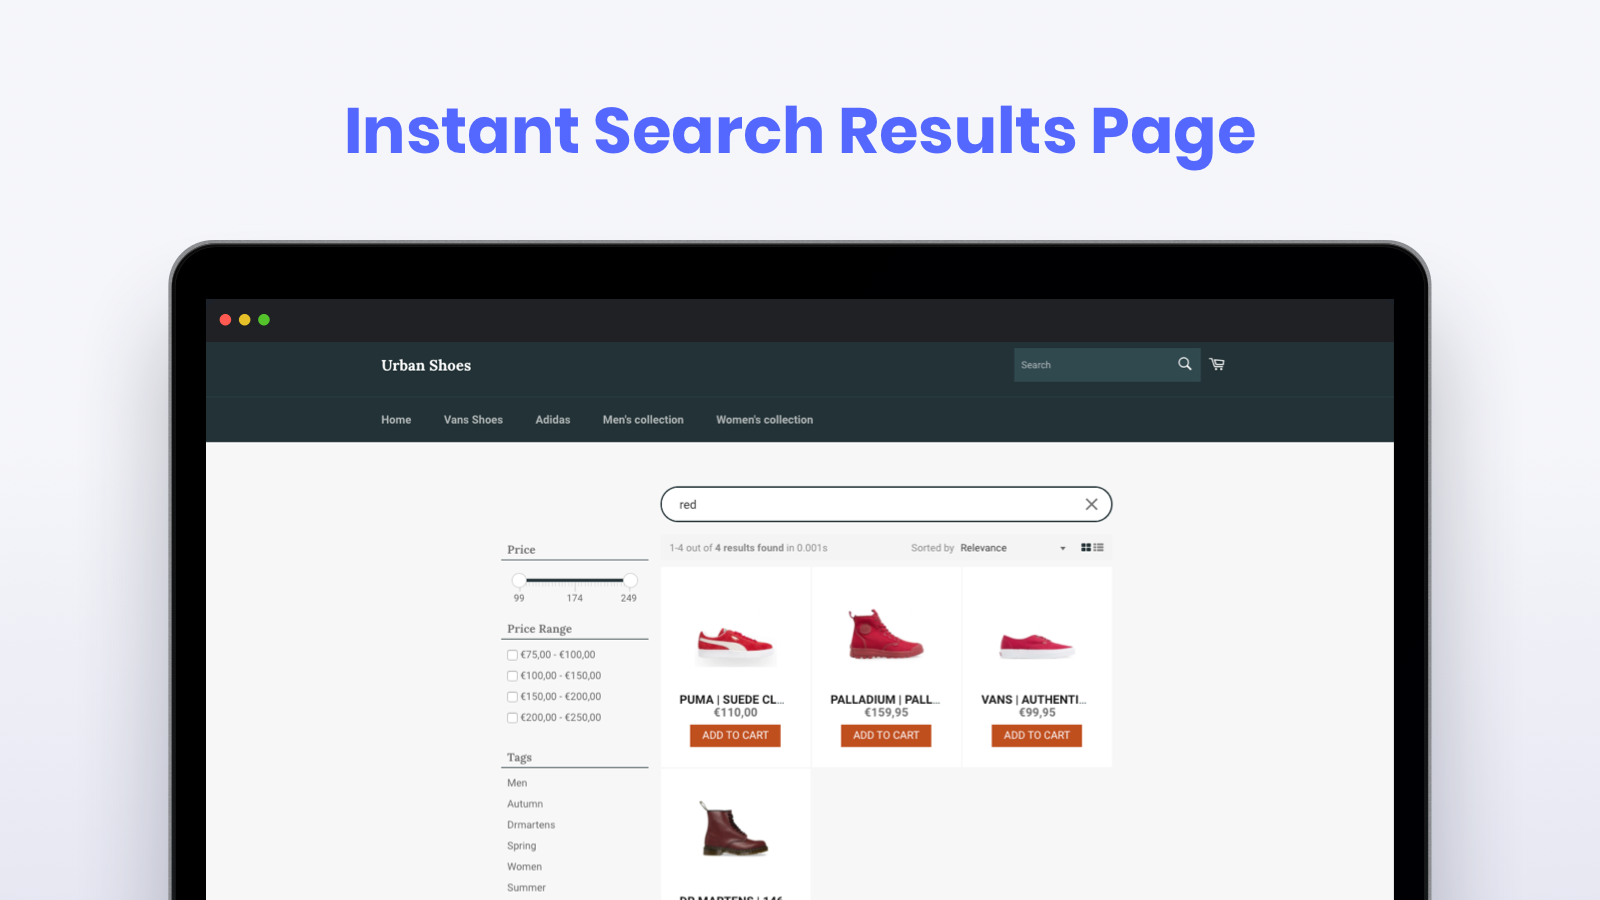 Instant Search Results Pages